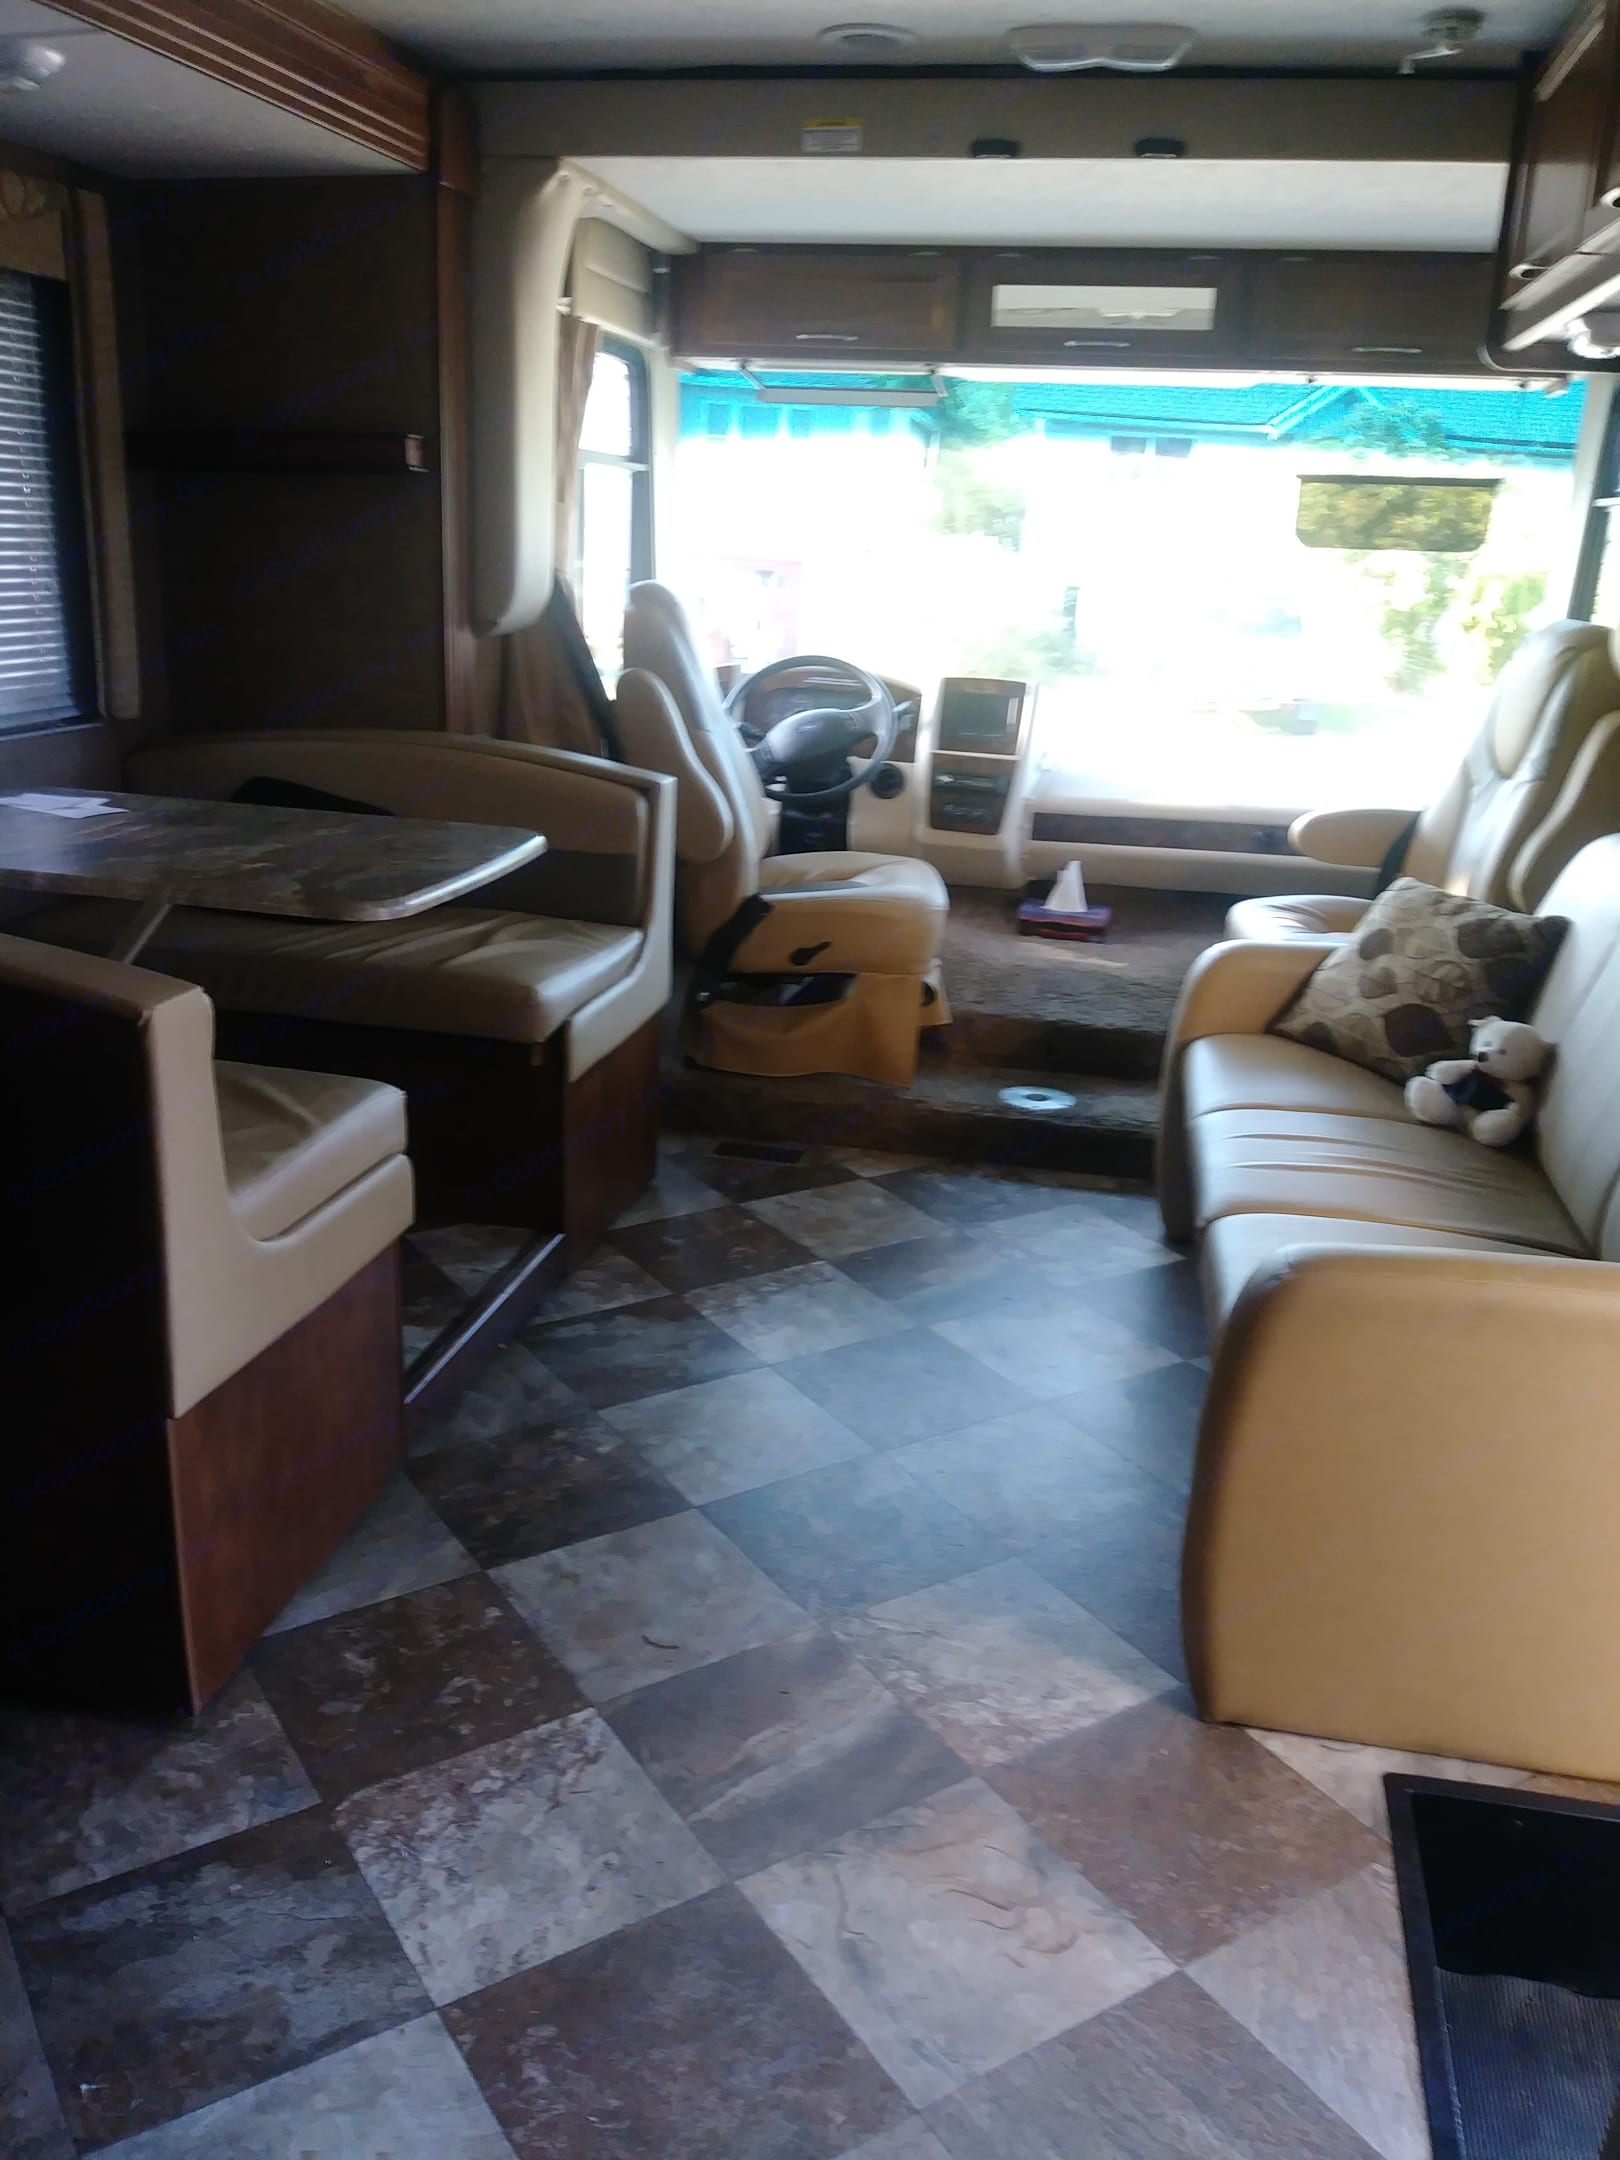 There is also a table that goes between the front seats if required. Back up and side camera display. Coachmen Pursuit 2014